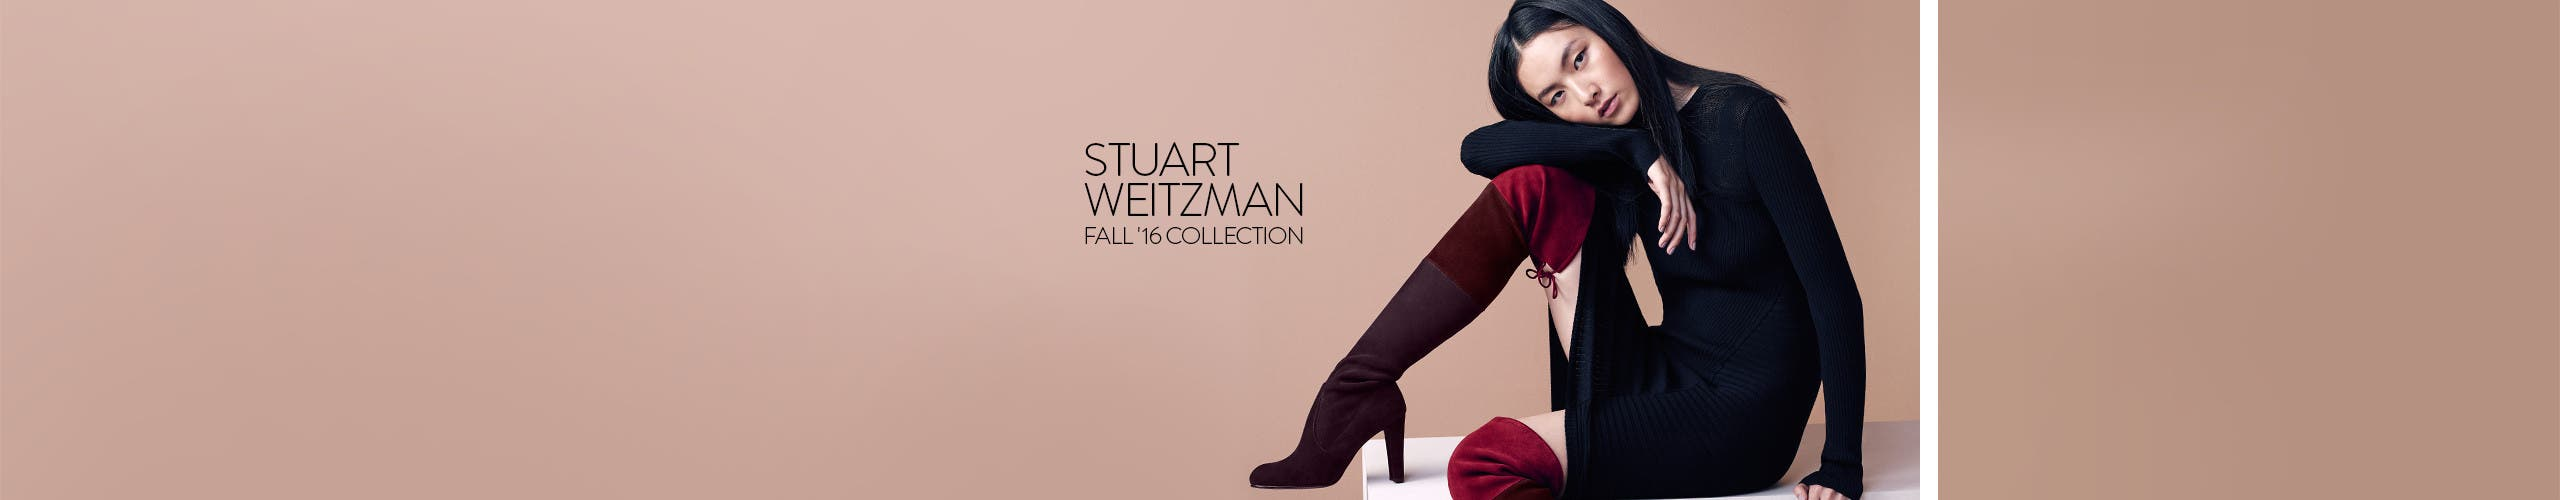 Stuart Weitzman fall 2016 collection.